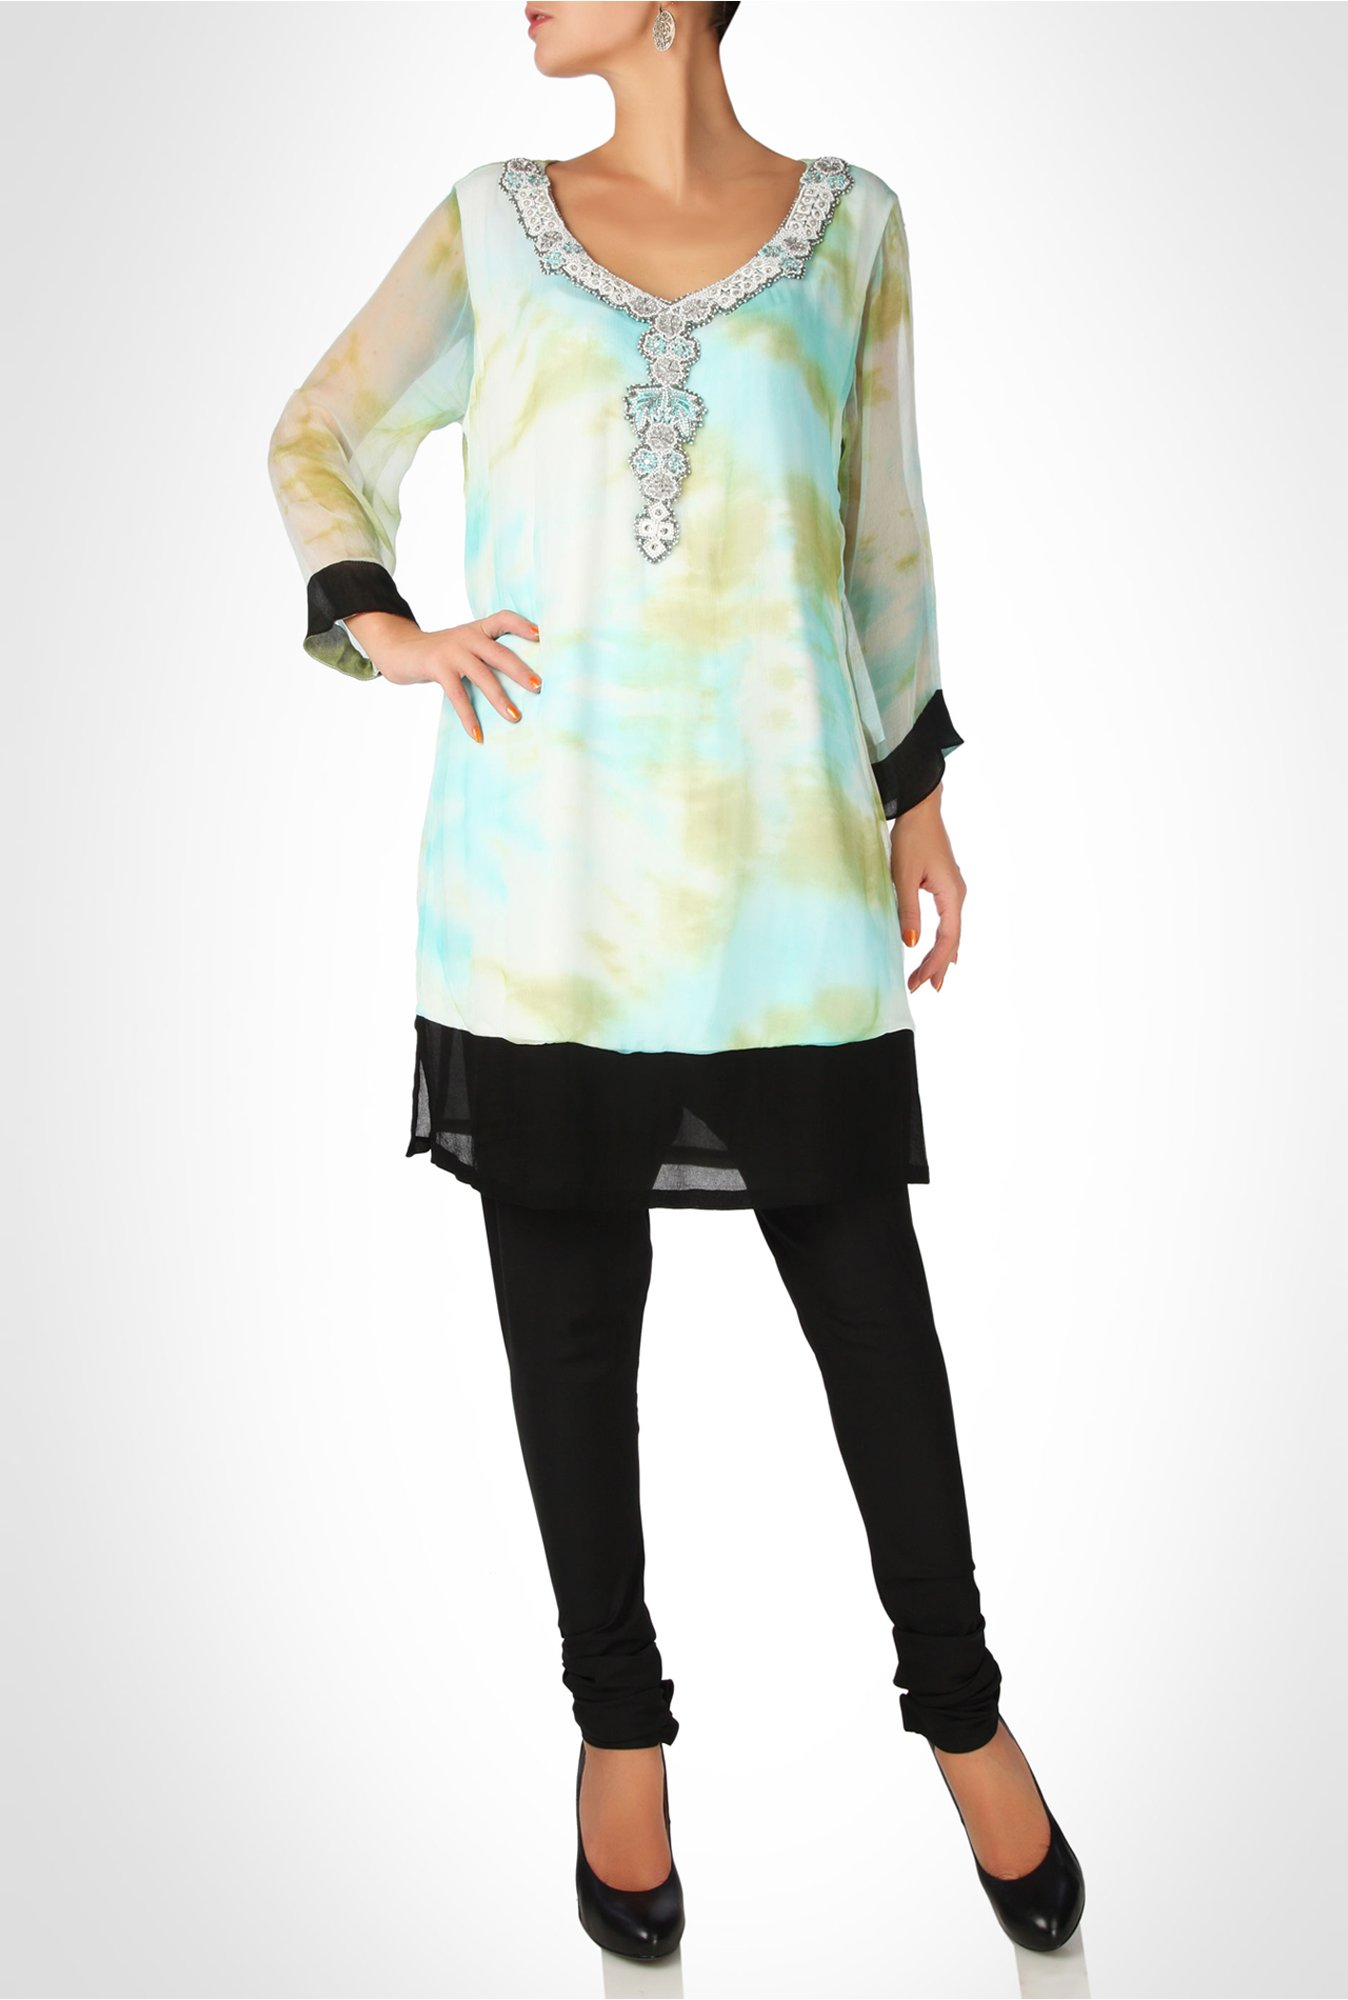 Arpan Vohra Designer Wear Multicolor Tunic by Kimaya